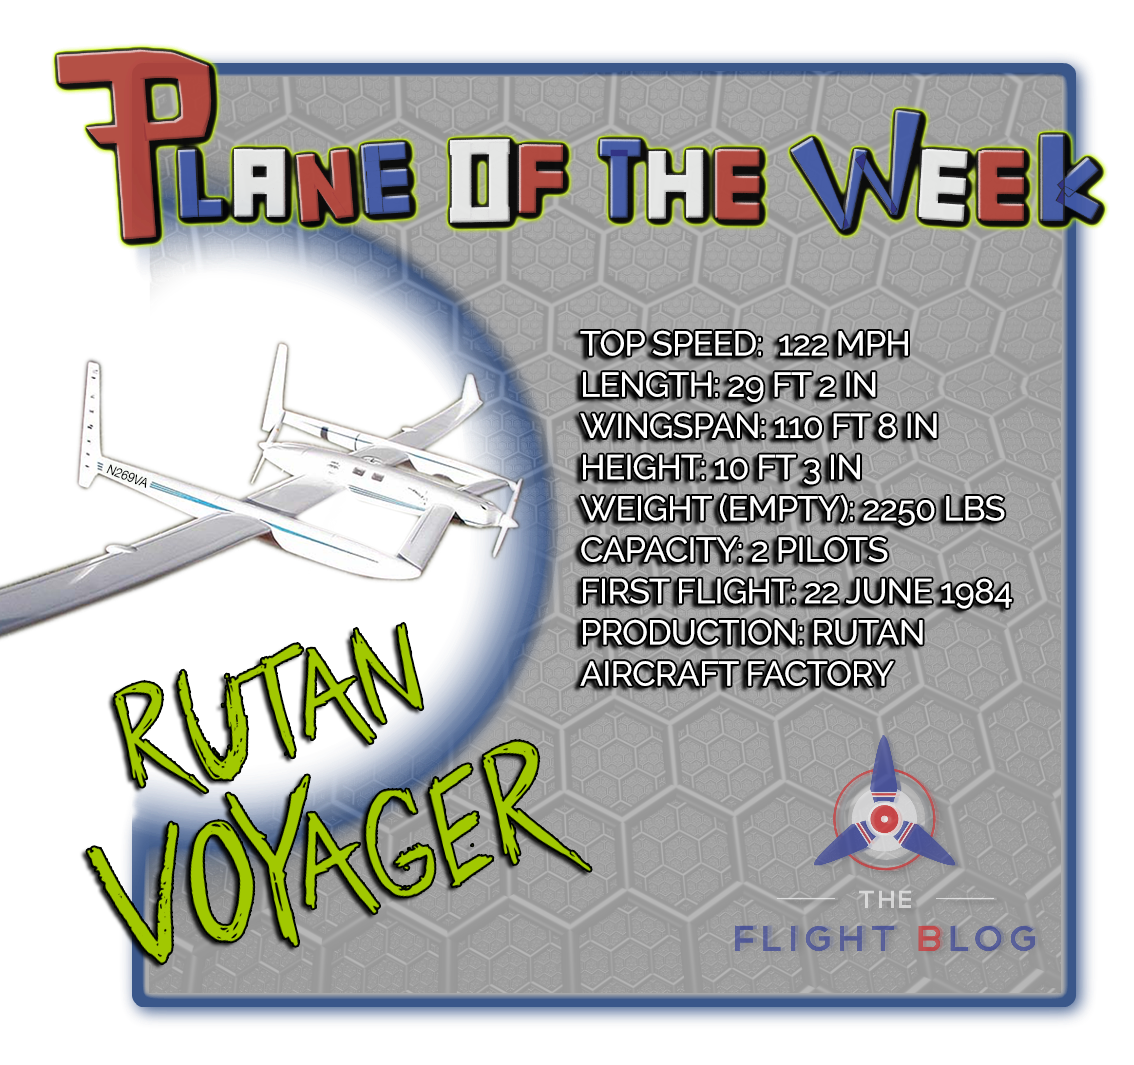 rutan voyager, the flight blog, plane of the week, aviation oil outlet, plane specs